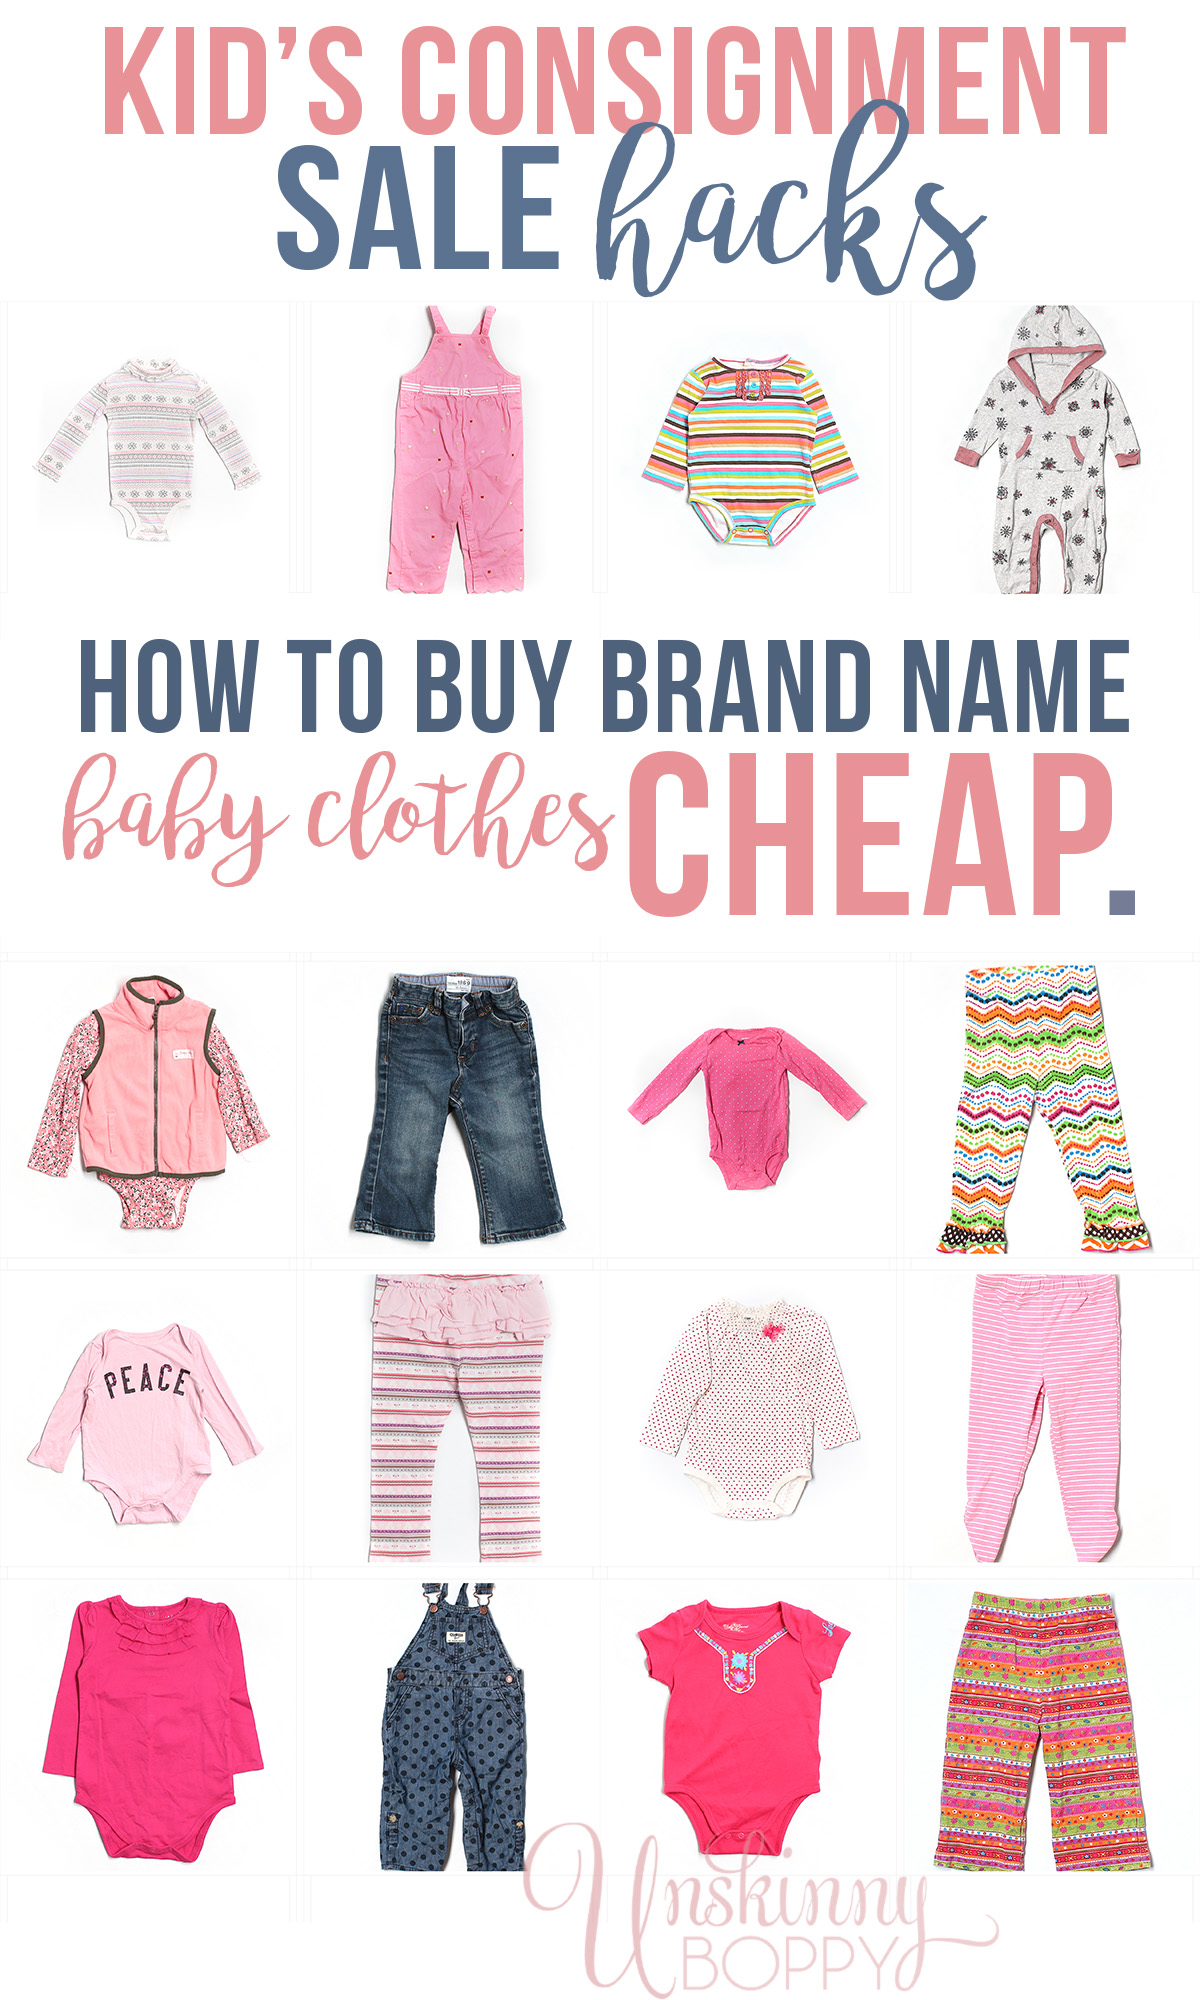 how to baby clothes cheap Unskinny Boppy